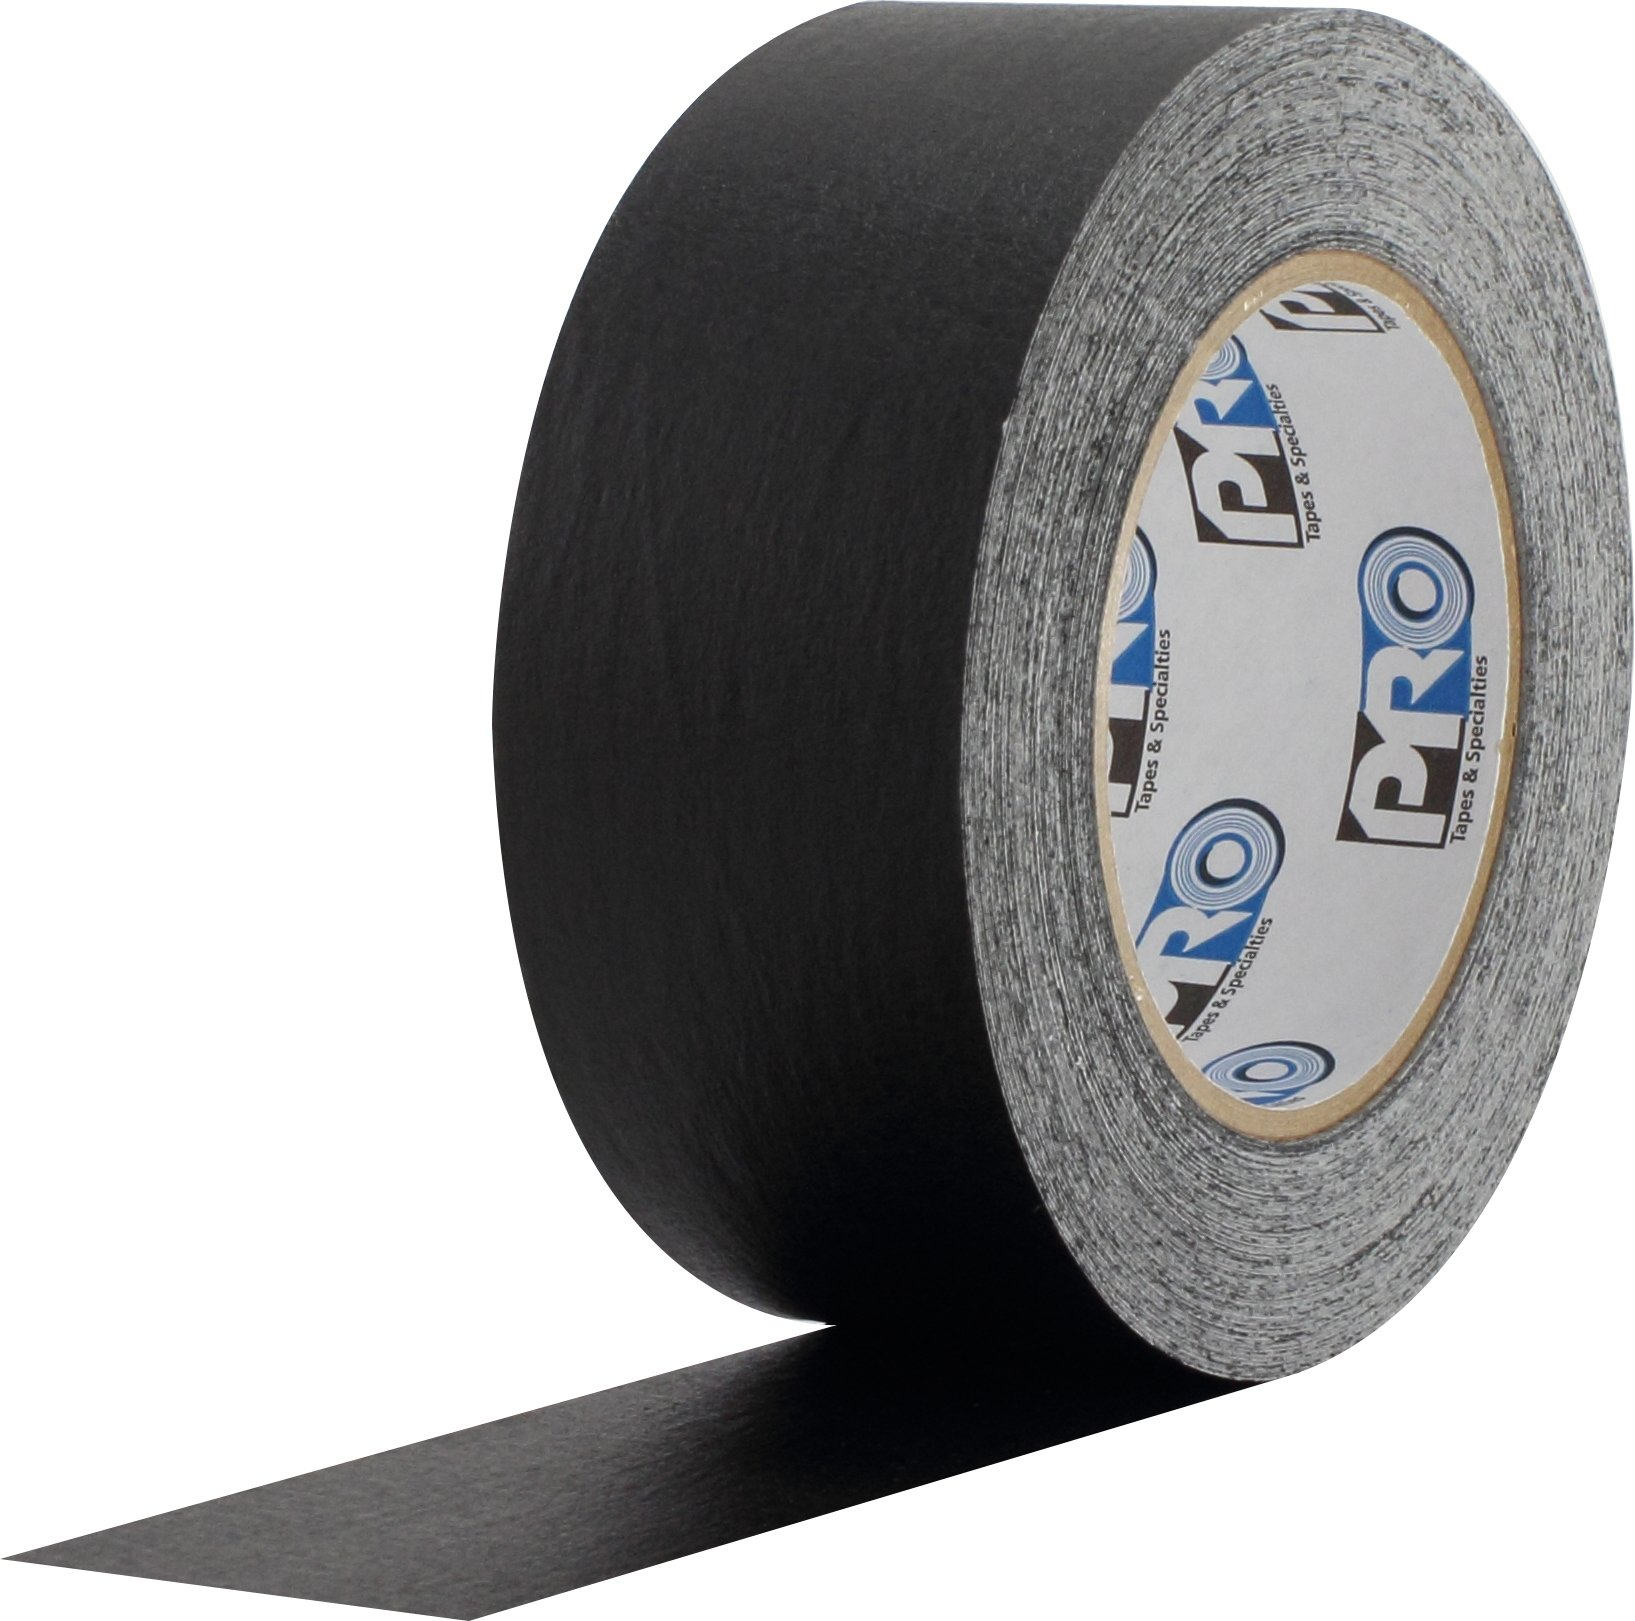 ProTapes Colored Crepe Paper Masking Tape, 60 yds Length x 2'' Width, Black (Pack of 24) by Pro Tapes (Image #1)